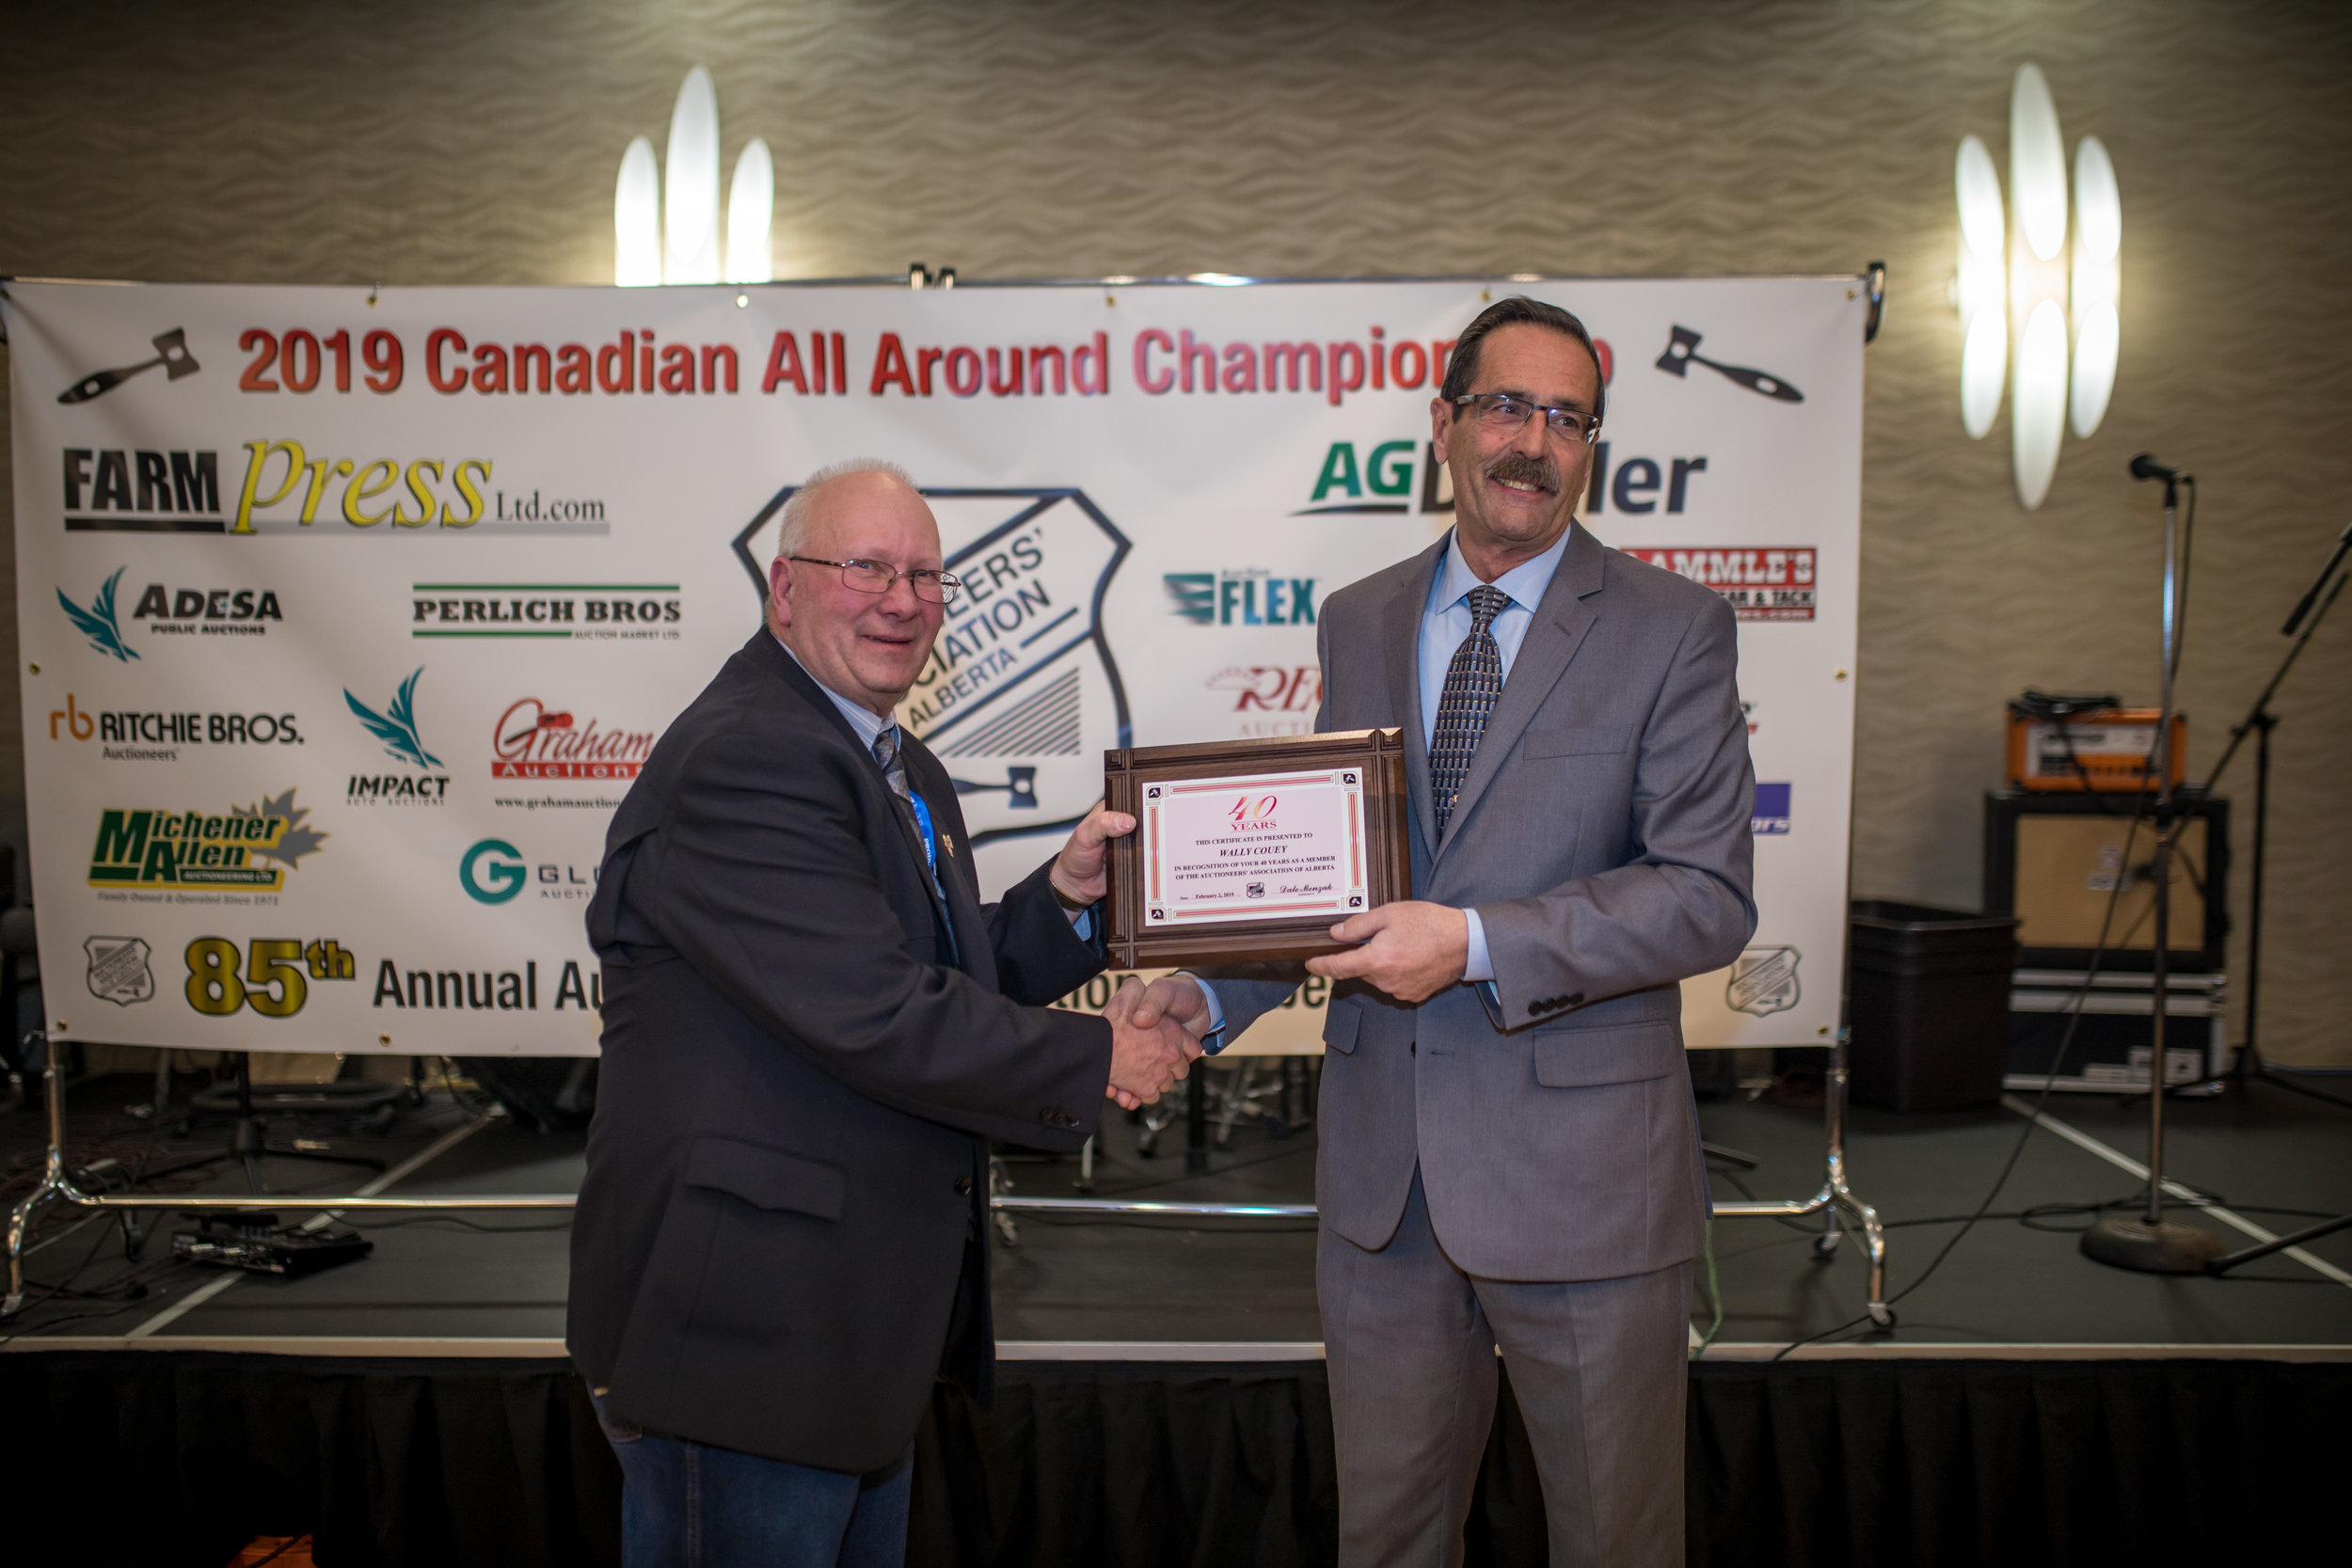 2019 02-02 Alberta Auctioneer Convention Day 03 - Calgary 11.jpg